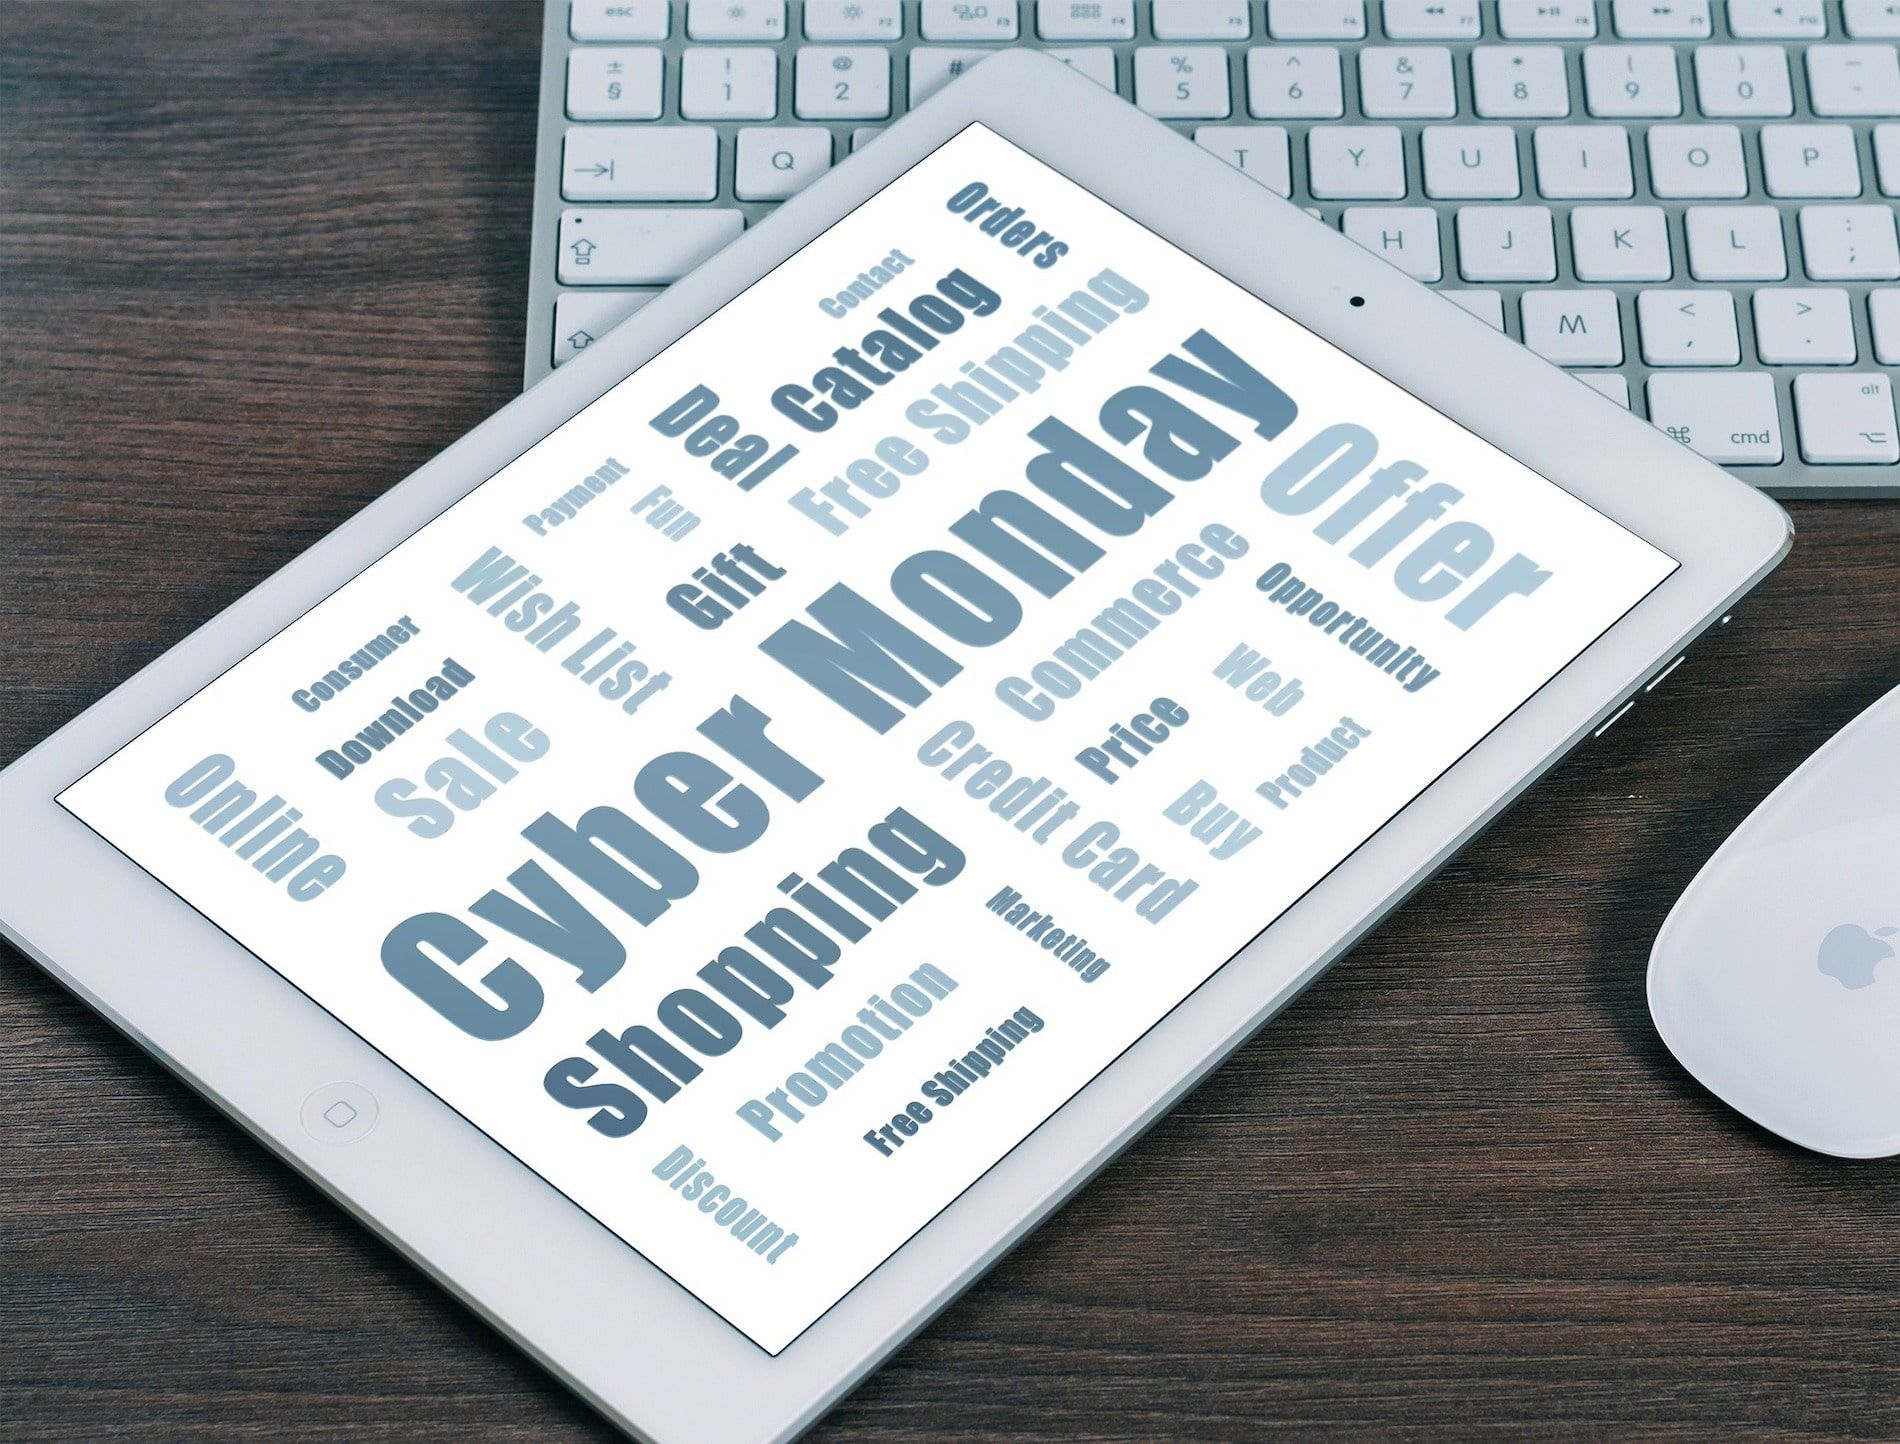 Your Cyber Monday 2019 Checklist For Holiday Success